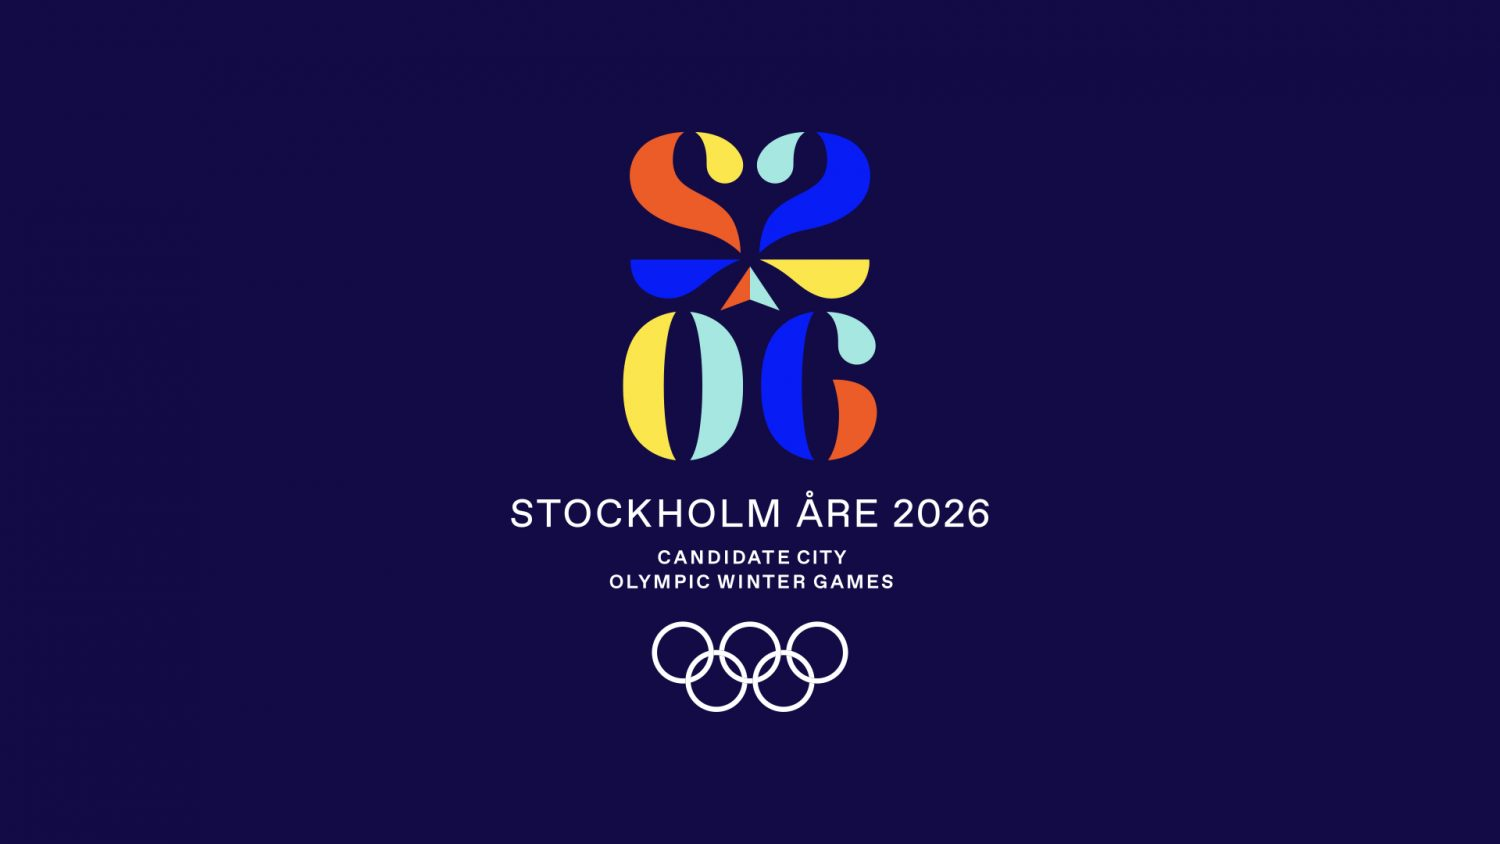 Stockholm Are